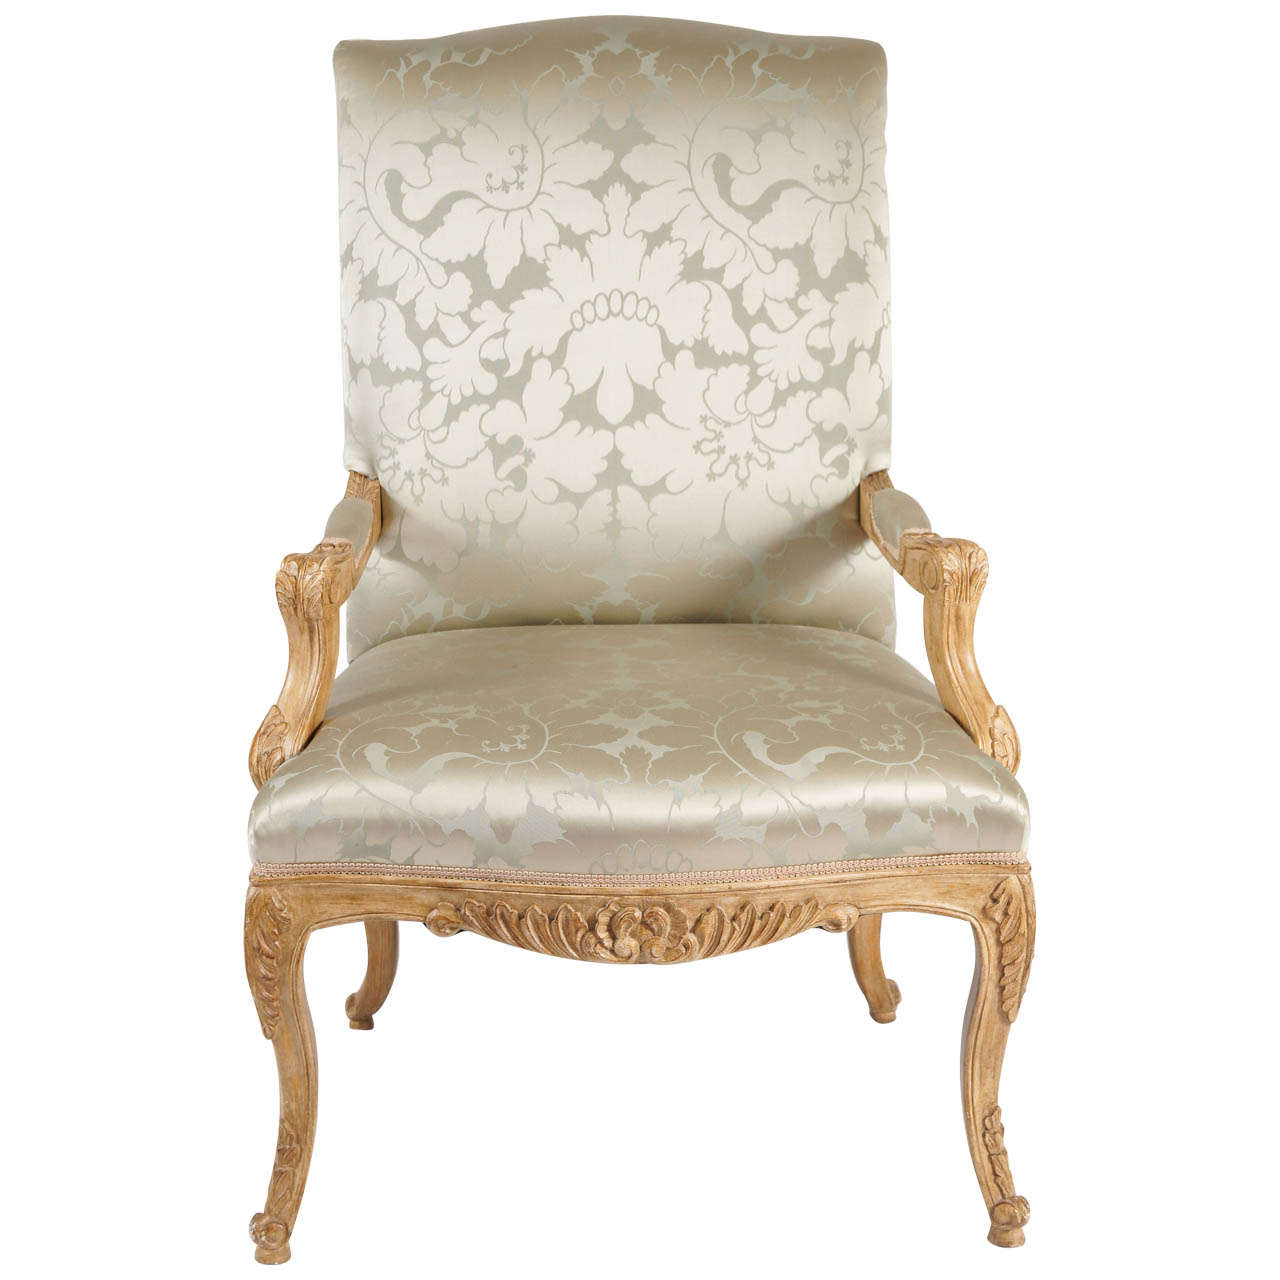 Missoni Home Ambrogina Folding Chair In Printed Satin: Louis XIV Style Chair, Silk Damask Upholstery At 1stdibs